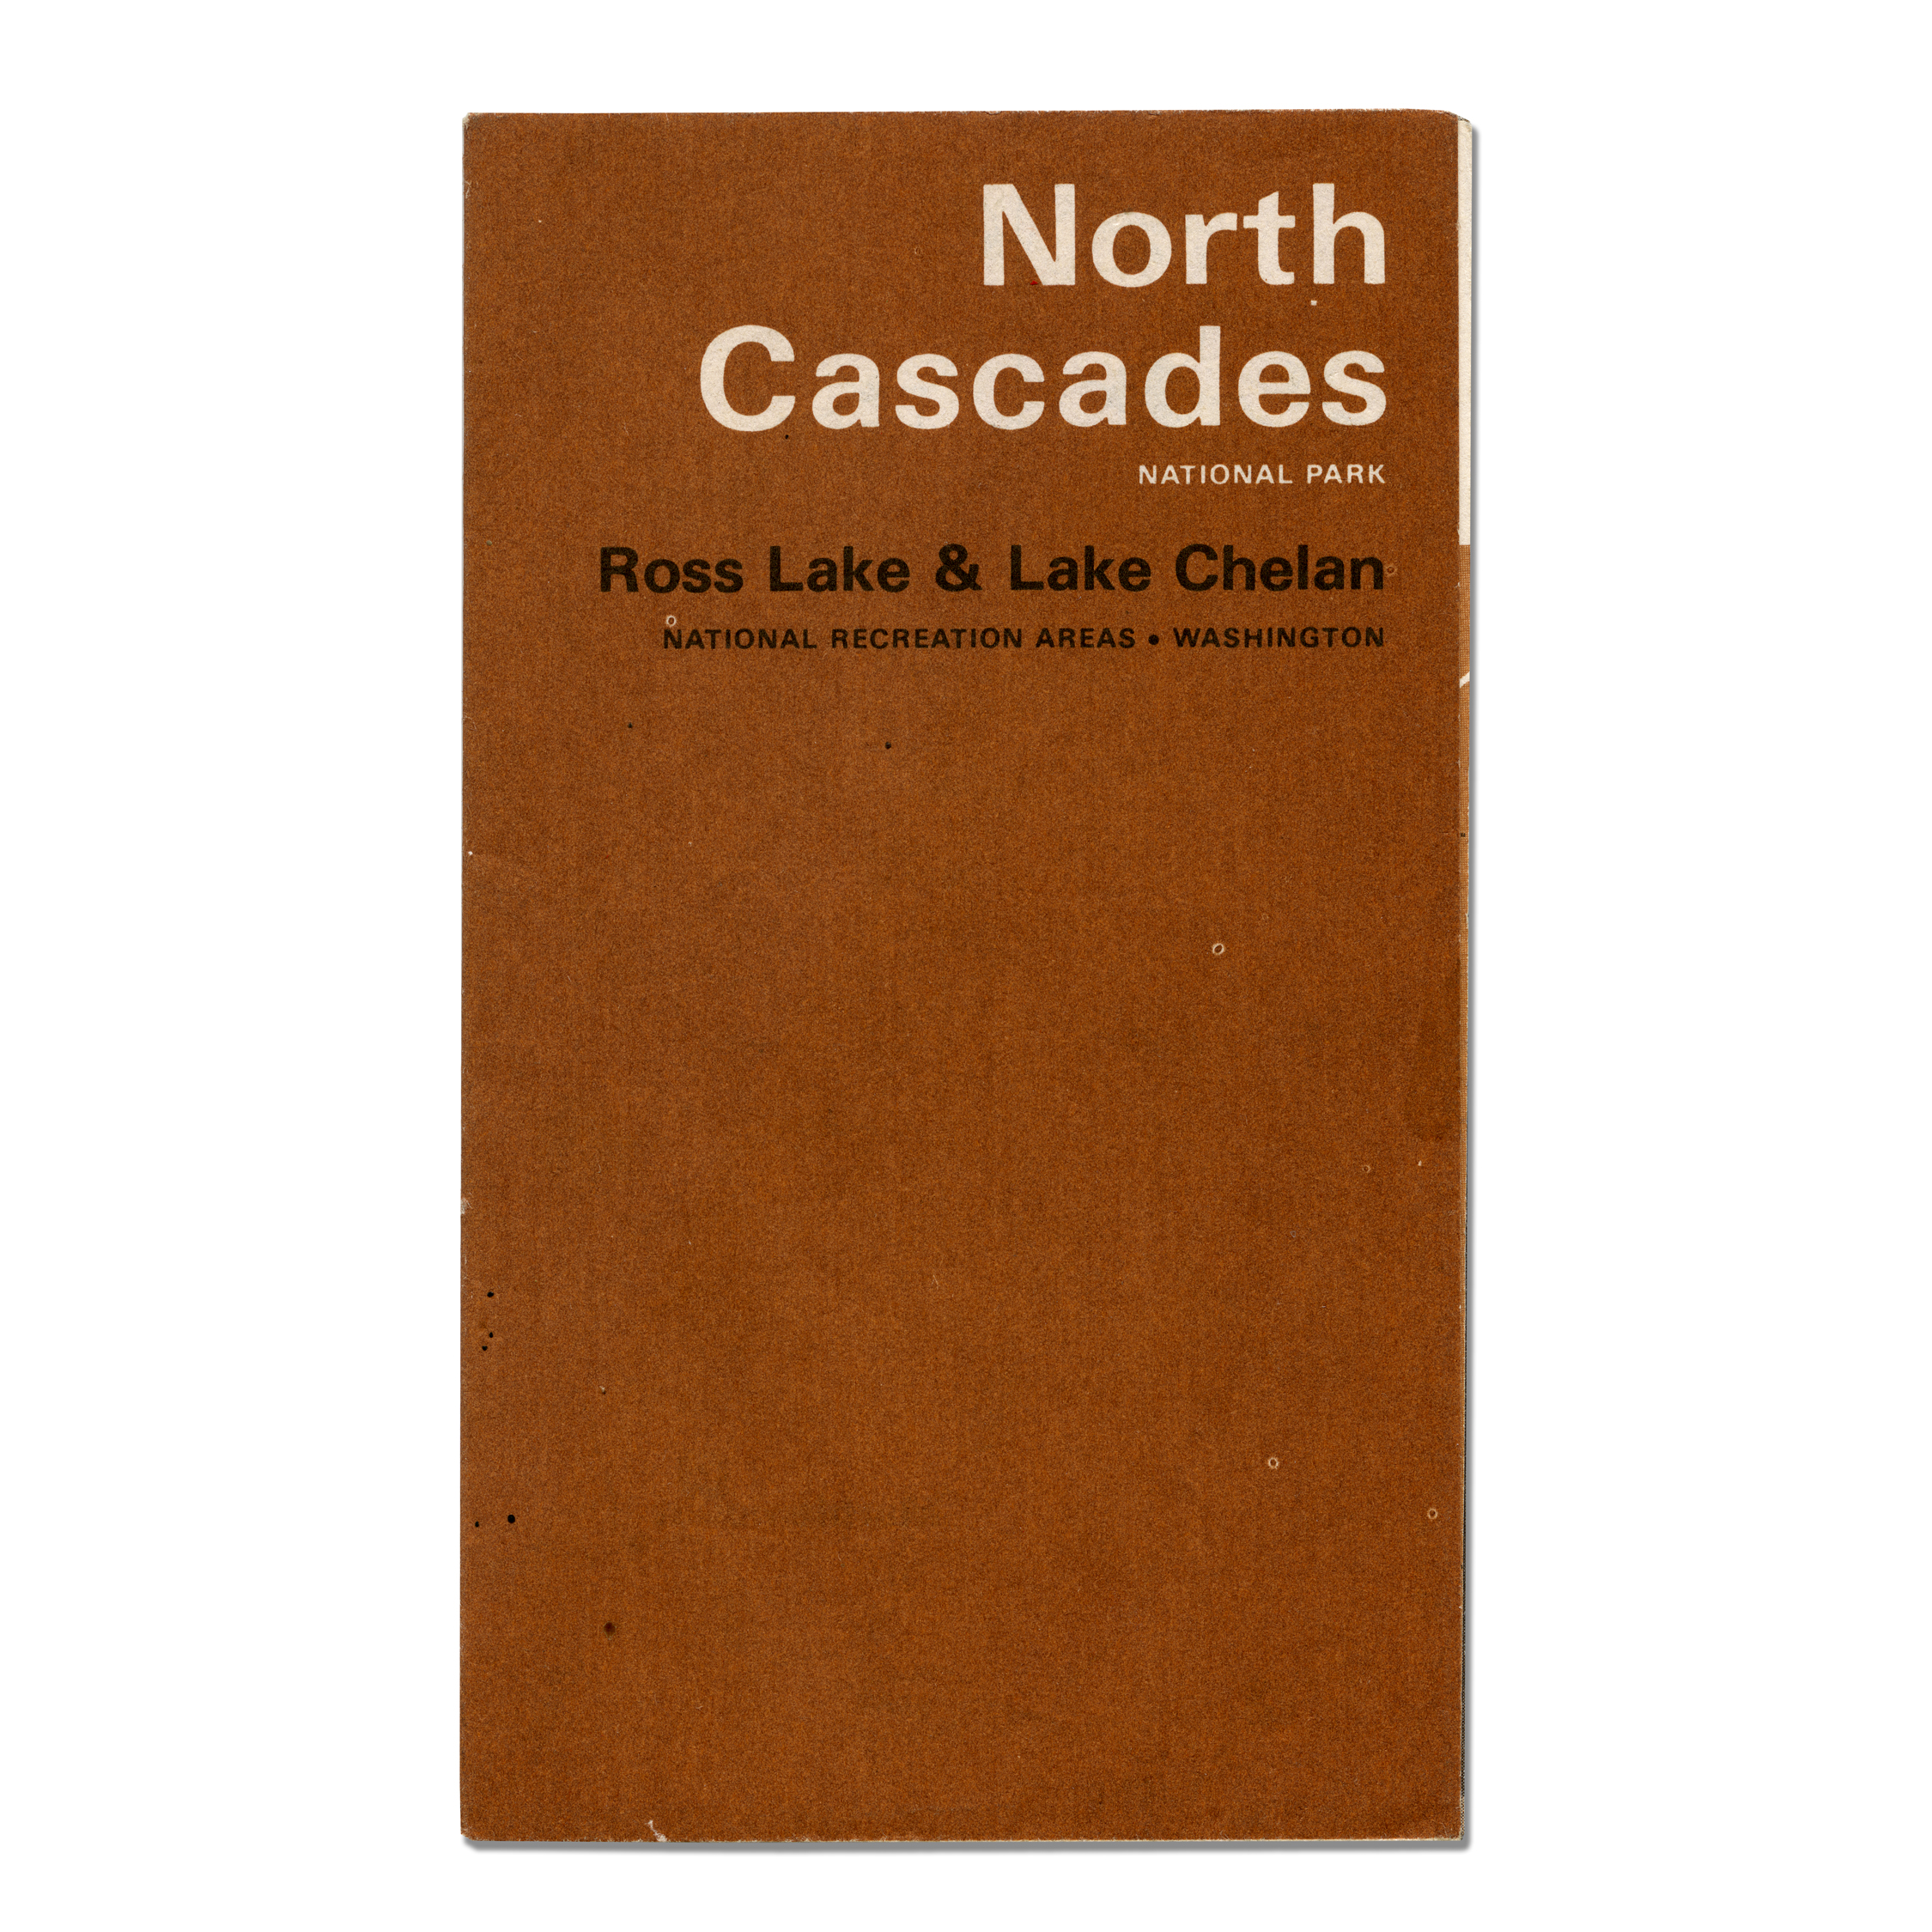 1977_north_cascades_national_park_brochure.jpg